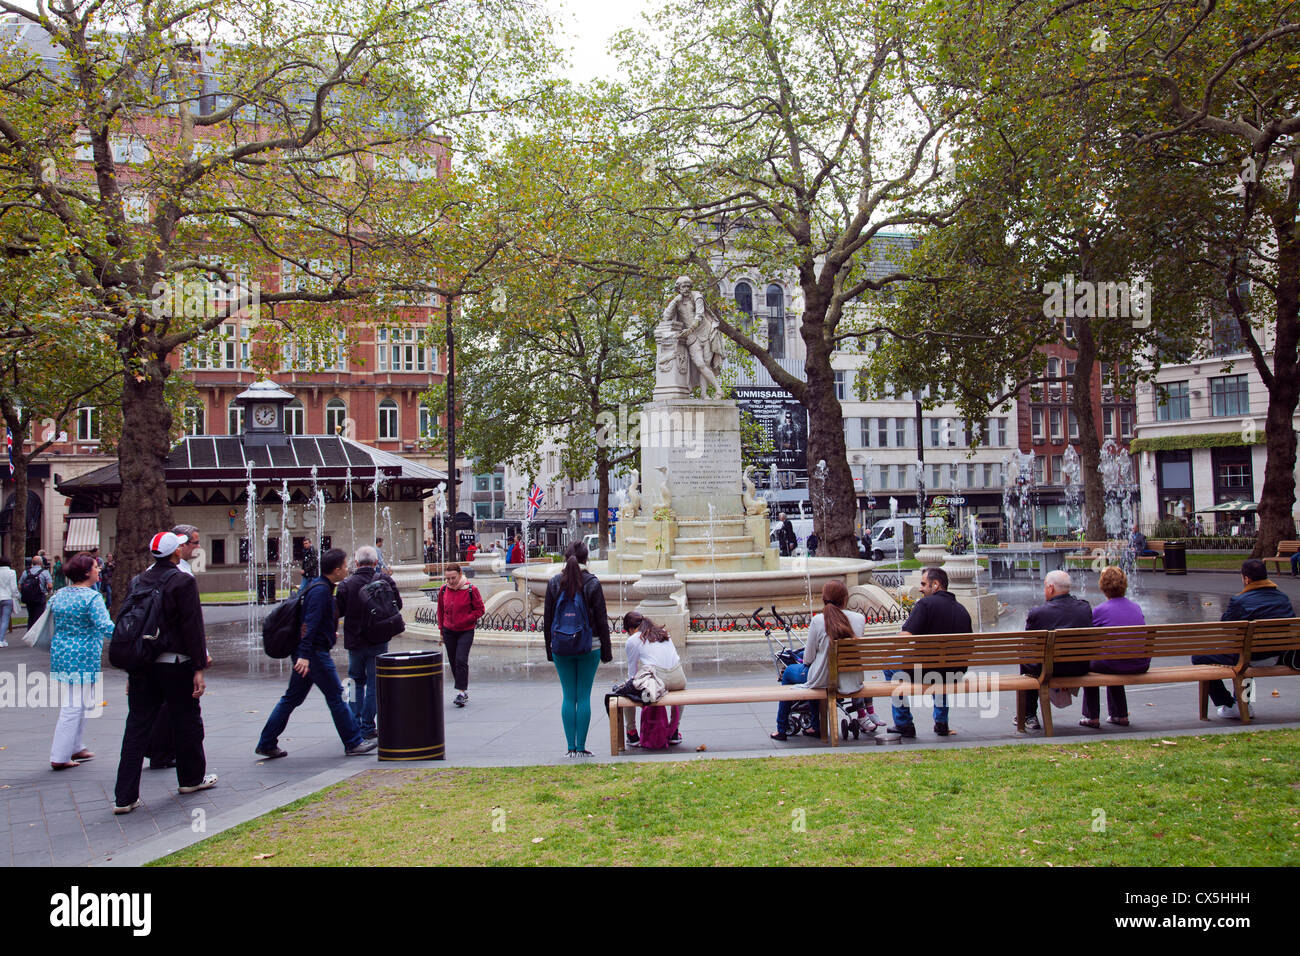 Leicester Square Fountain - London UK - Stock Image